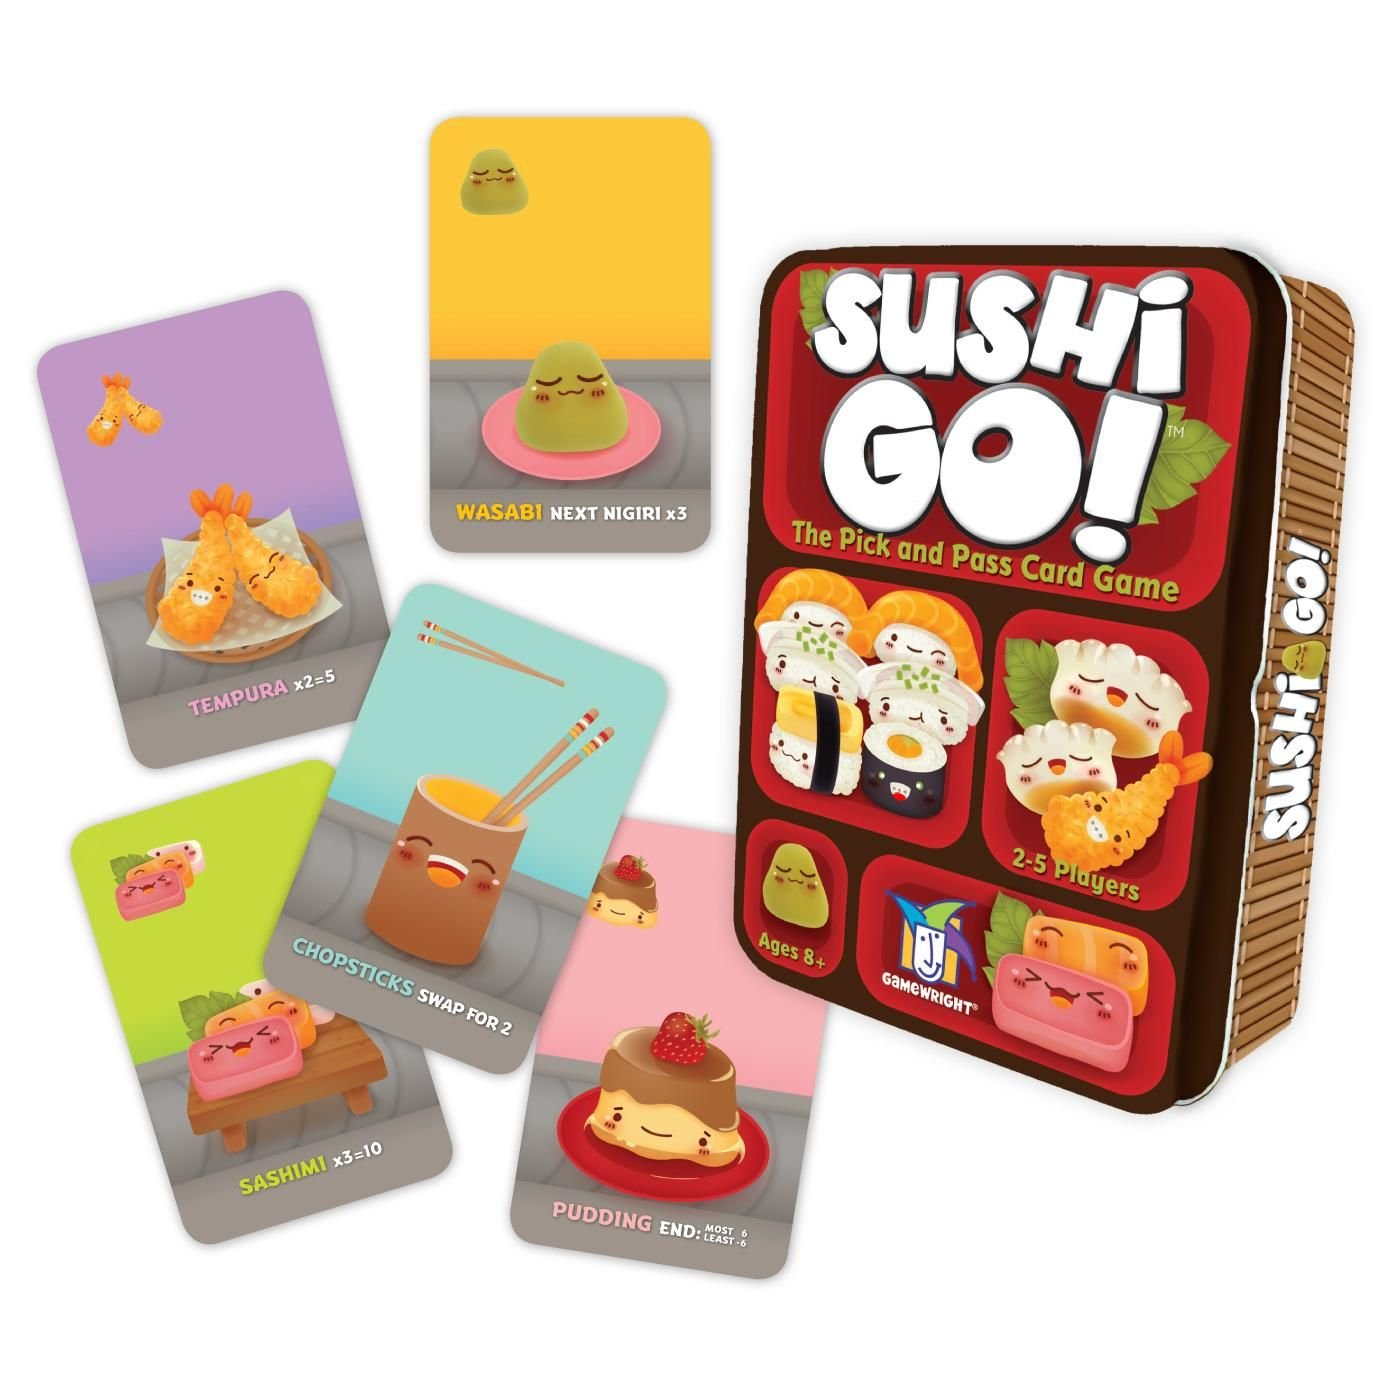 http://www.amazon.com/Sushi-Go-Pick-Pass-Card/dp/B00J57VU44/ref=sr_1_1?s=toys-and-games&ie=UTF8&qid=1434457950&sr=1-1&keywords=sushi+go